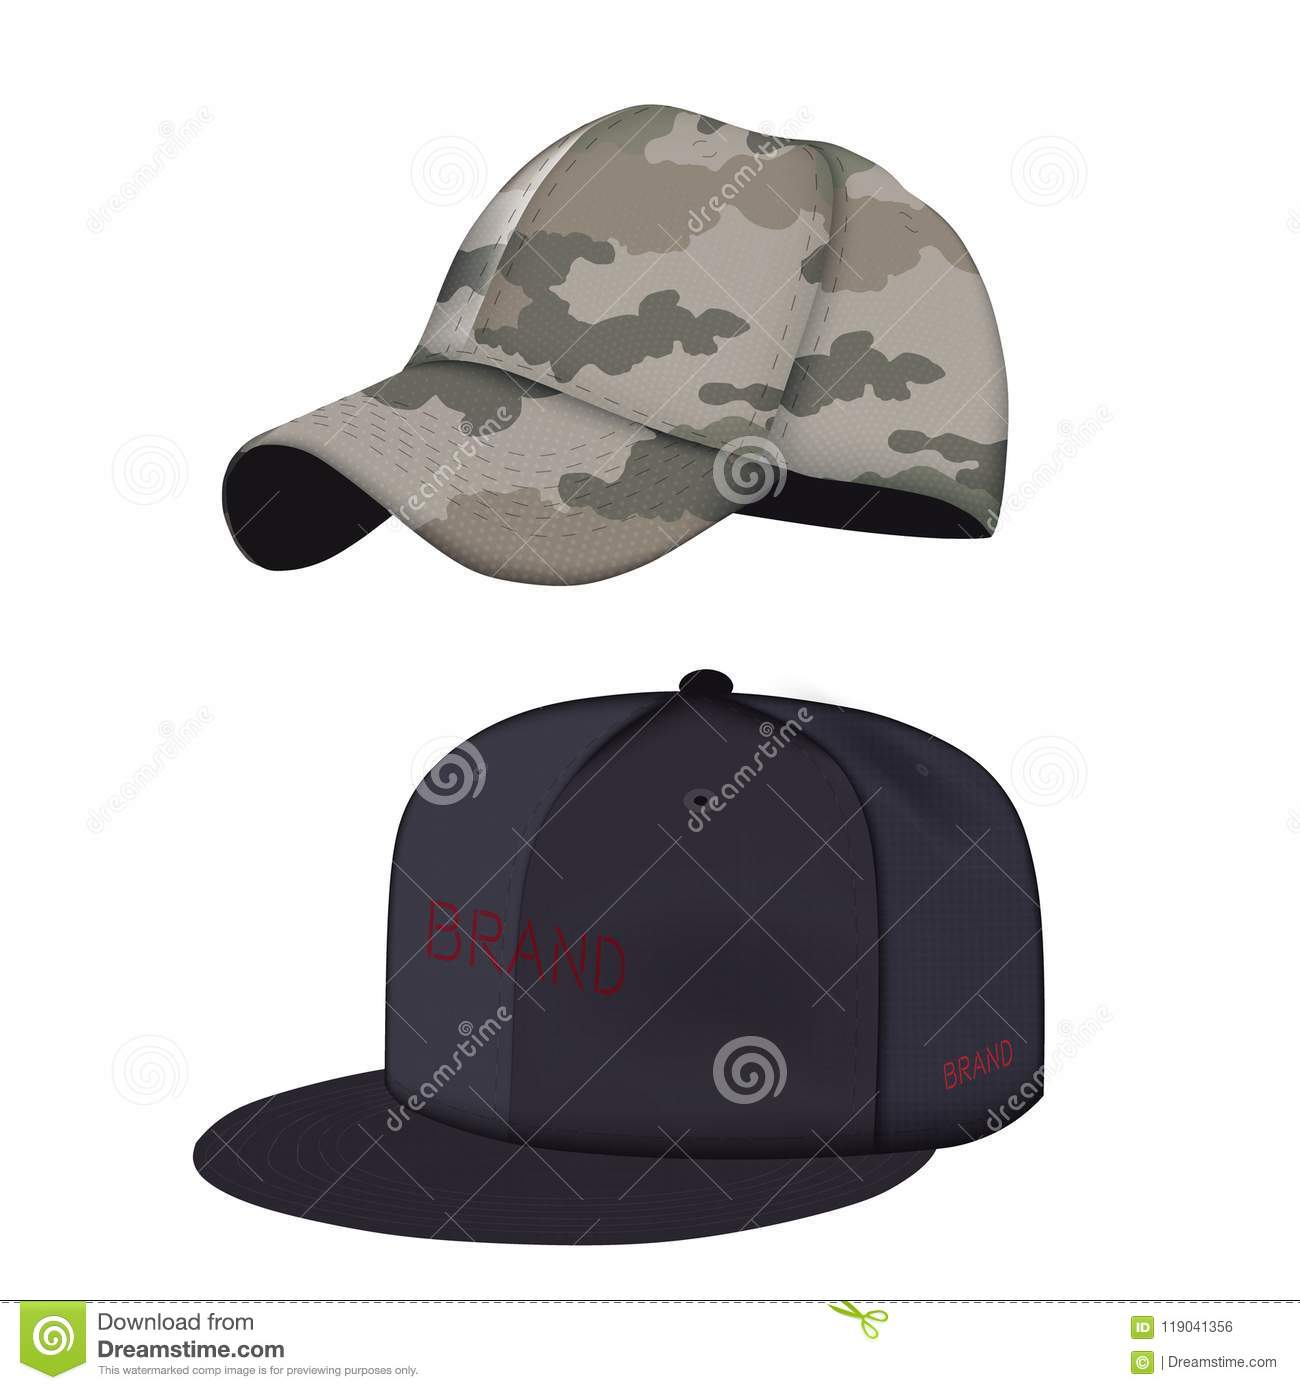 dafc6a13d0bc3a Realistic black and camouflage baseball caps set. Side view isolated.  Vector illustration. Mock-up. More similar stock illustrations